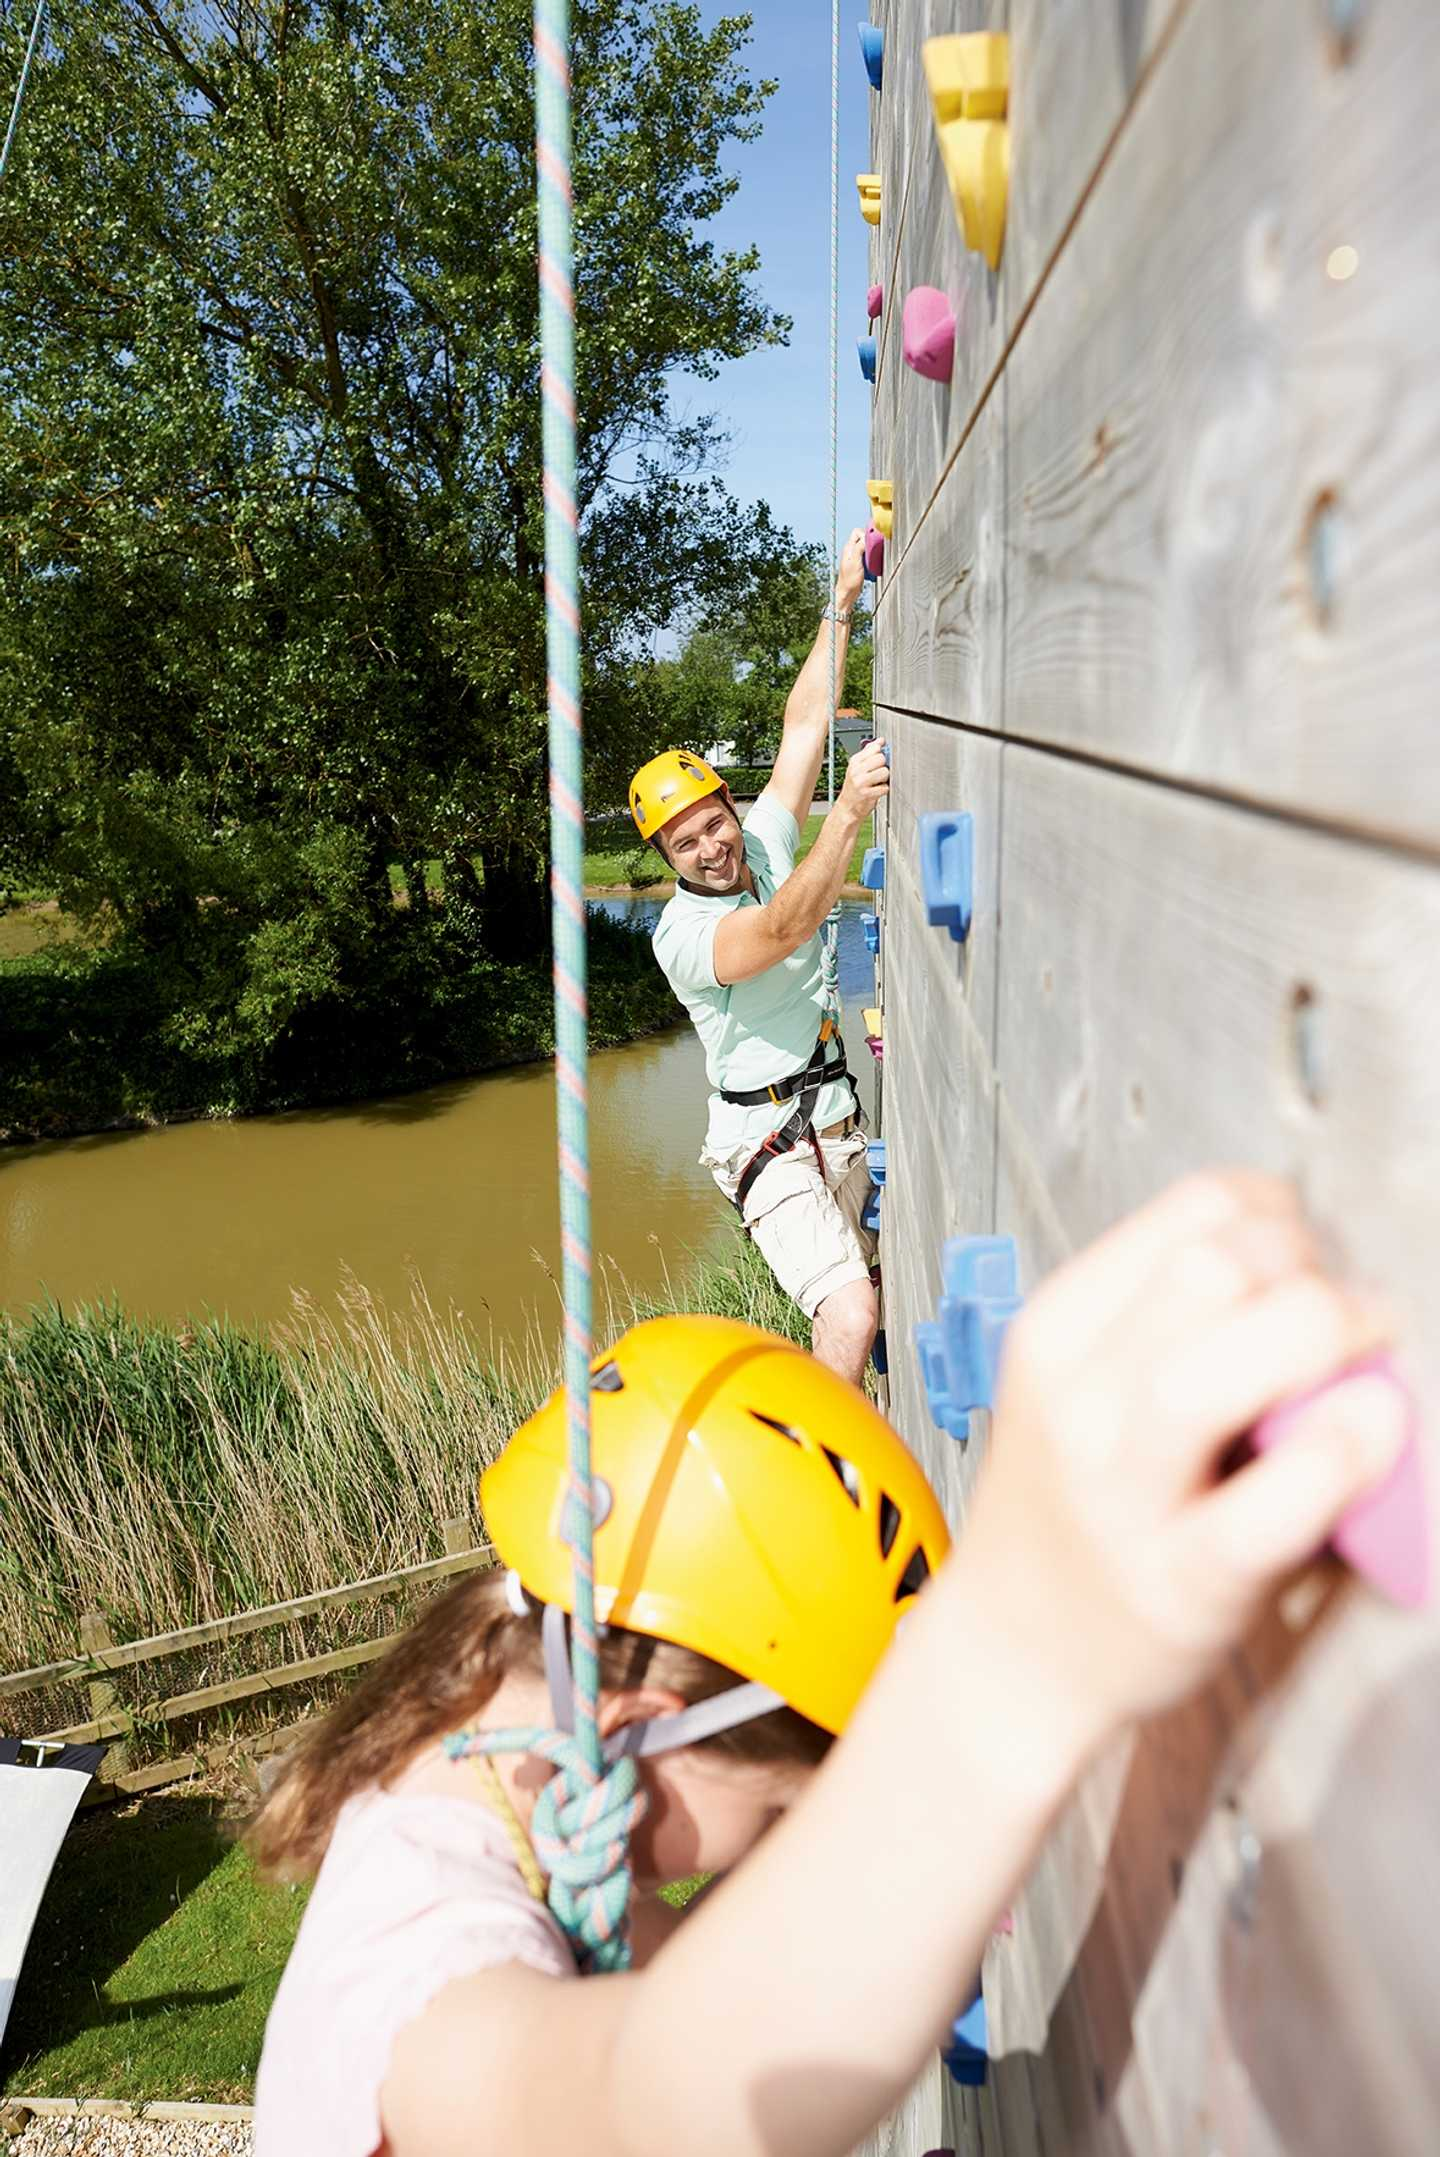 Children scaling the climbing wall